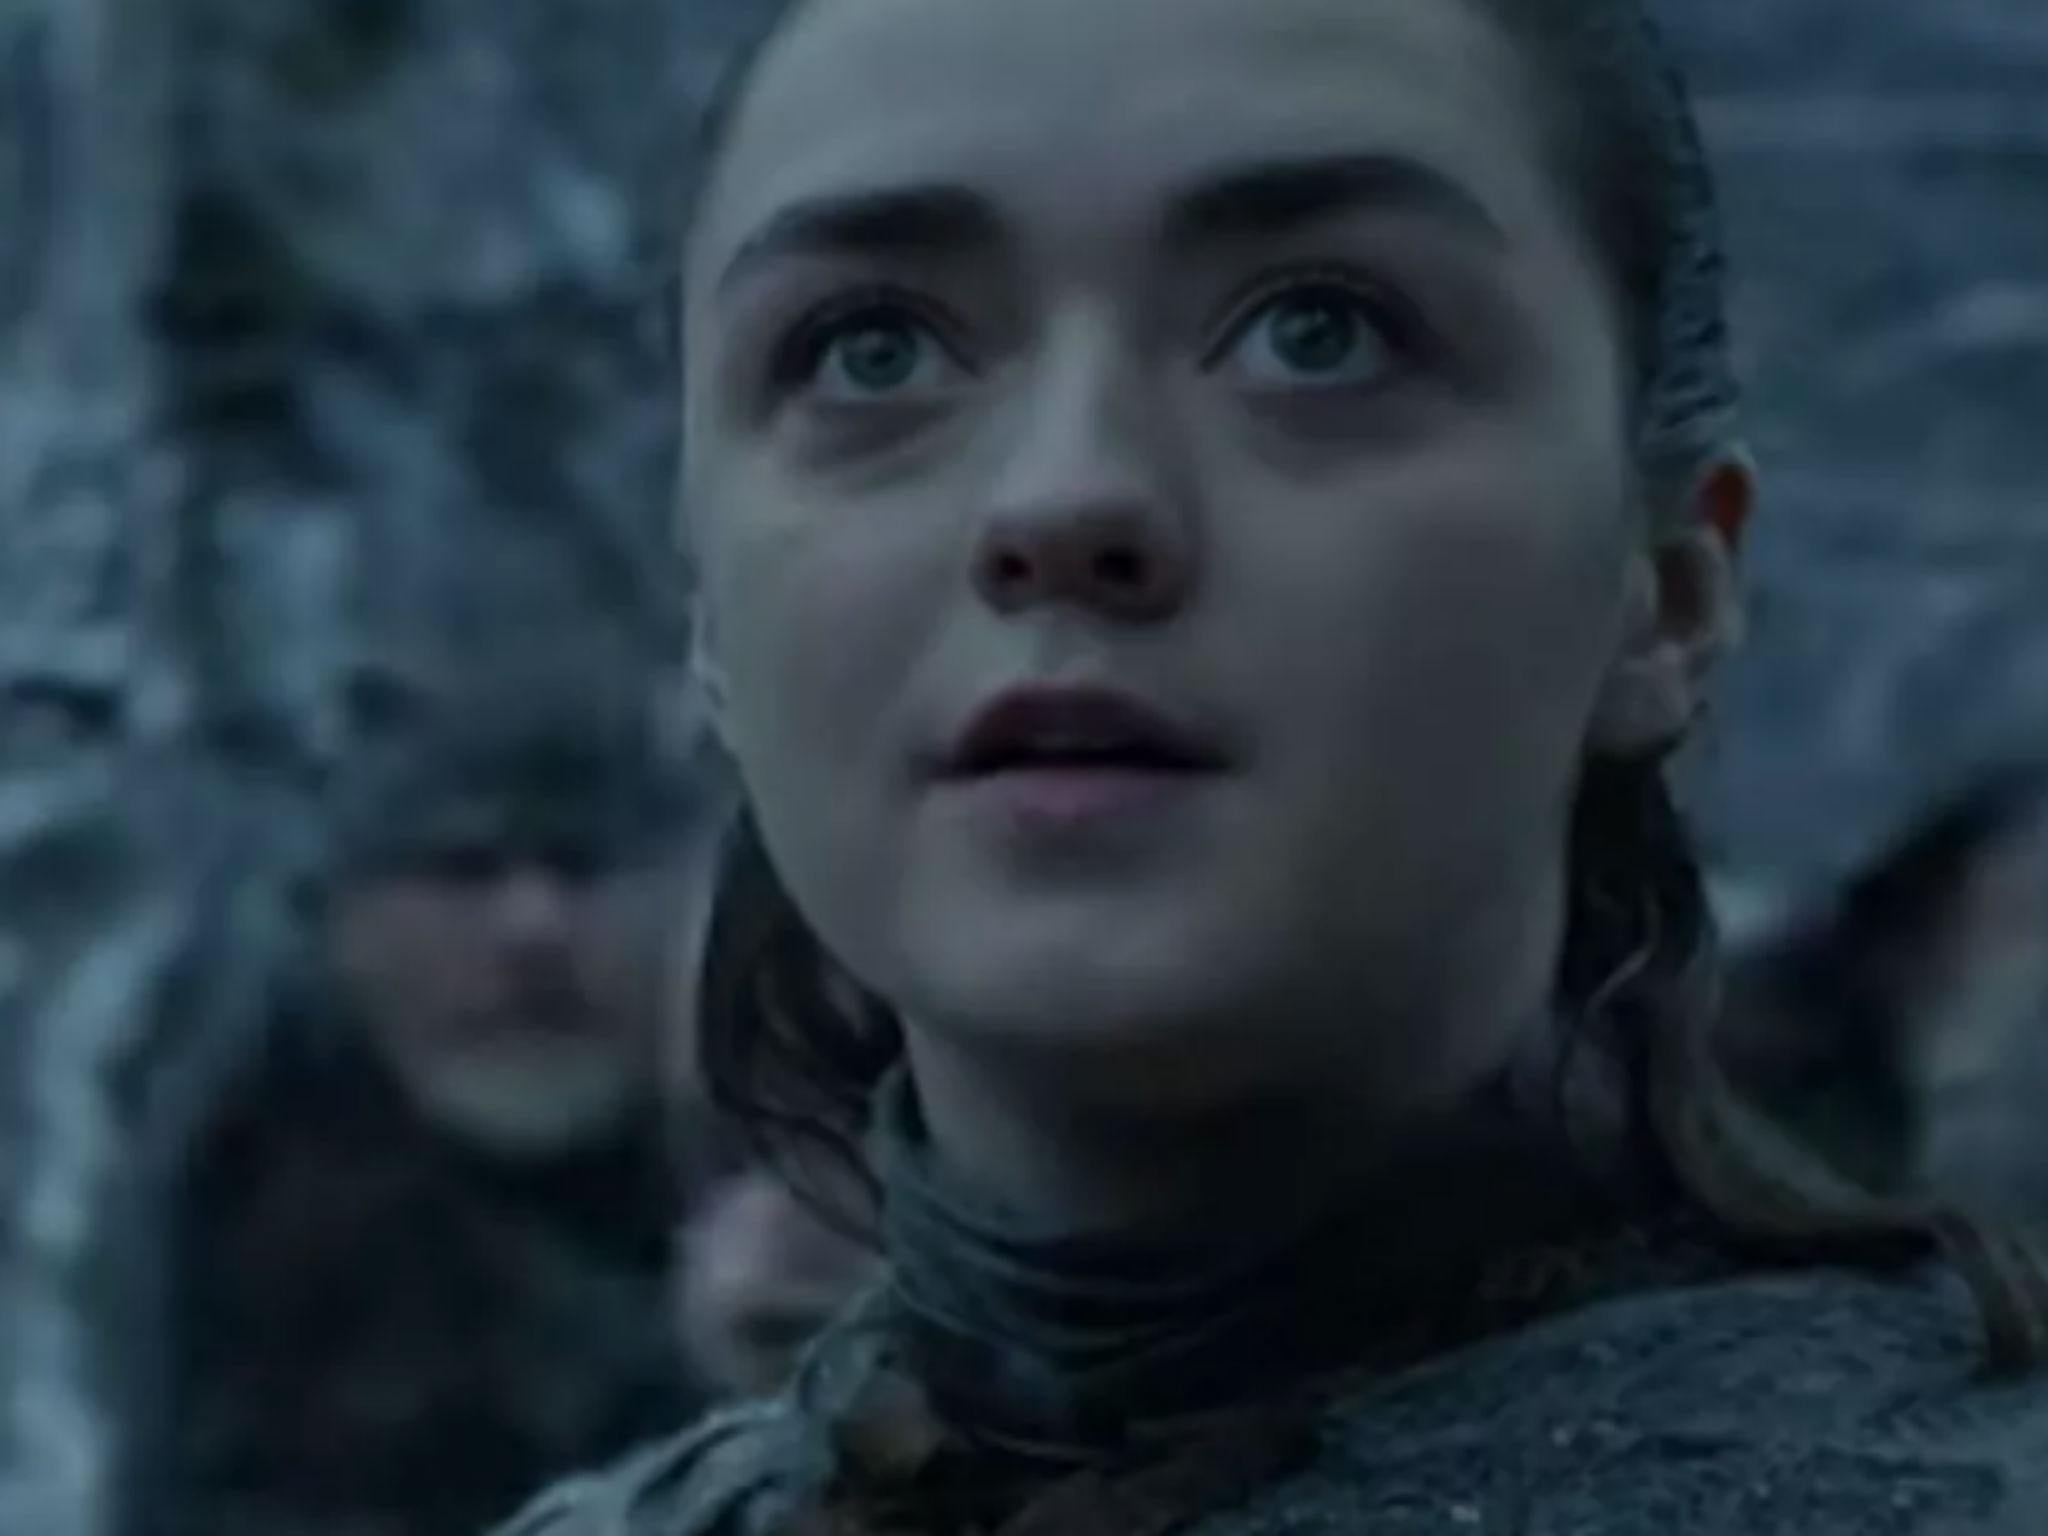 Game Of Thrones Season 8 Arya Stark Sees Dragon For First Time In